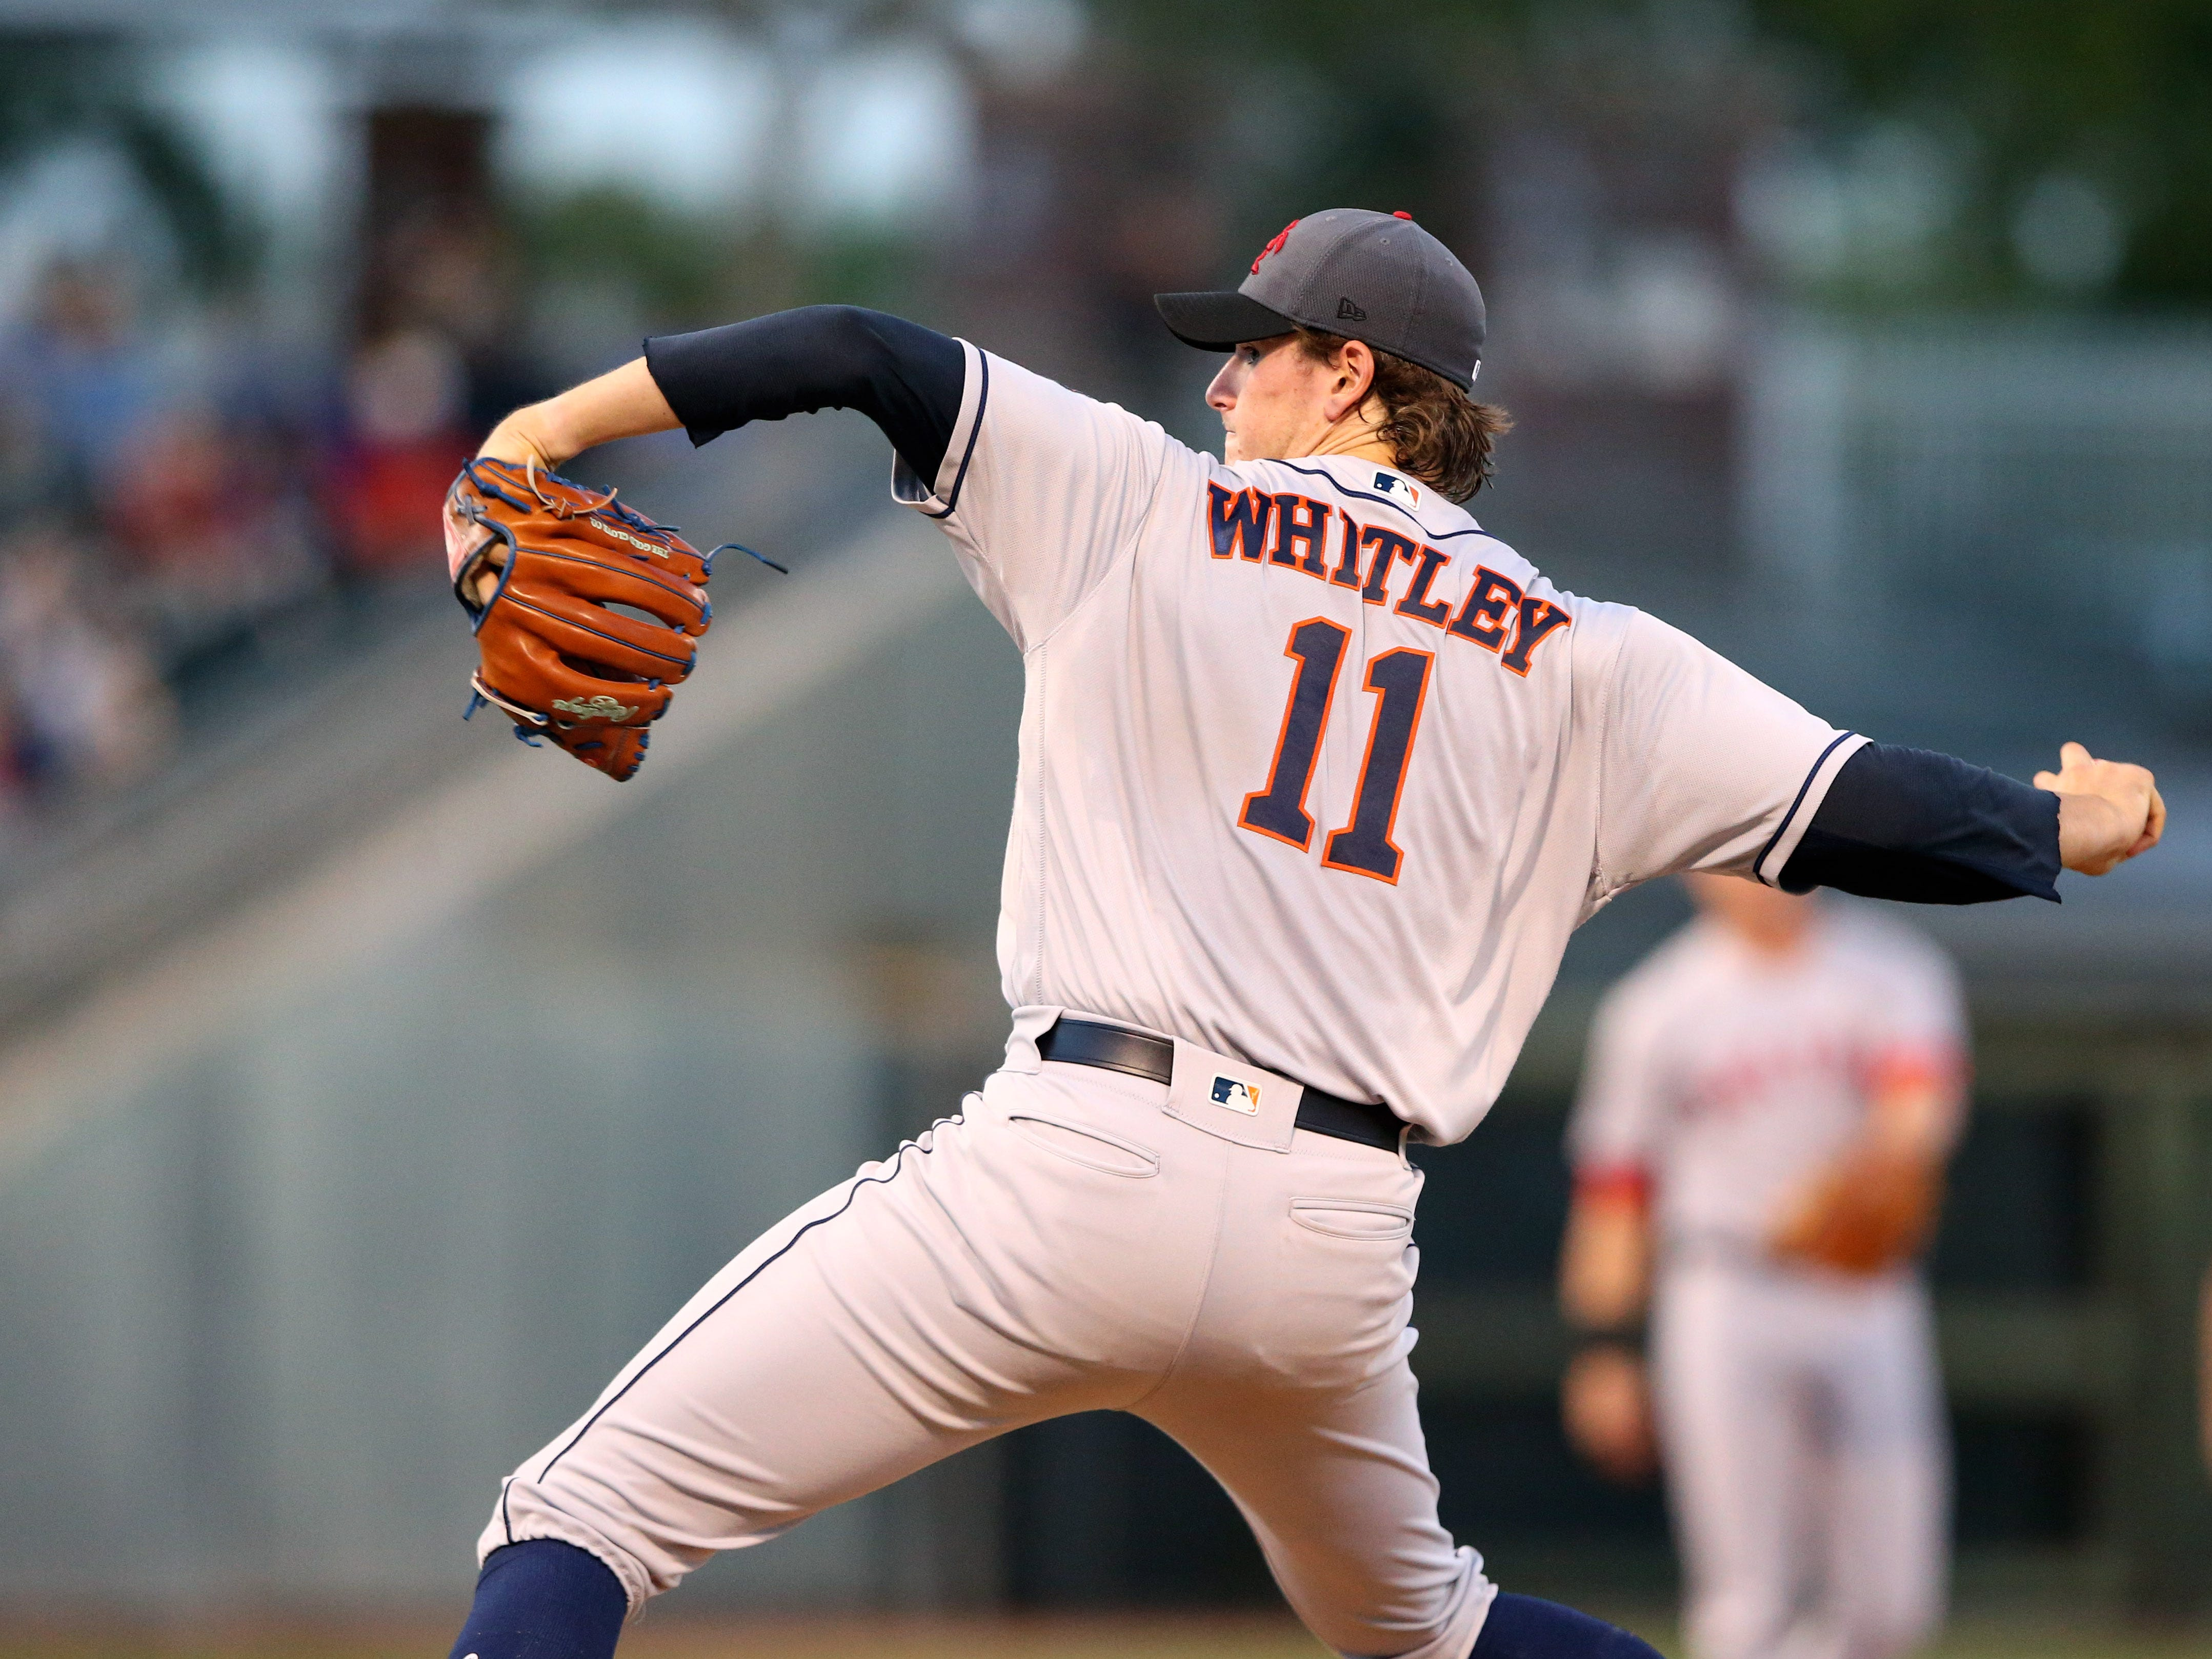 15. Forrest Whitley, RHP, Astros